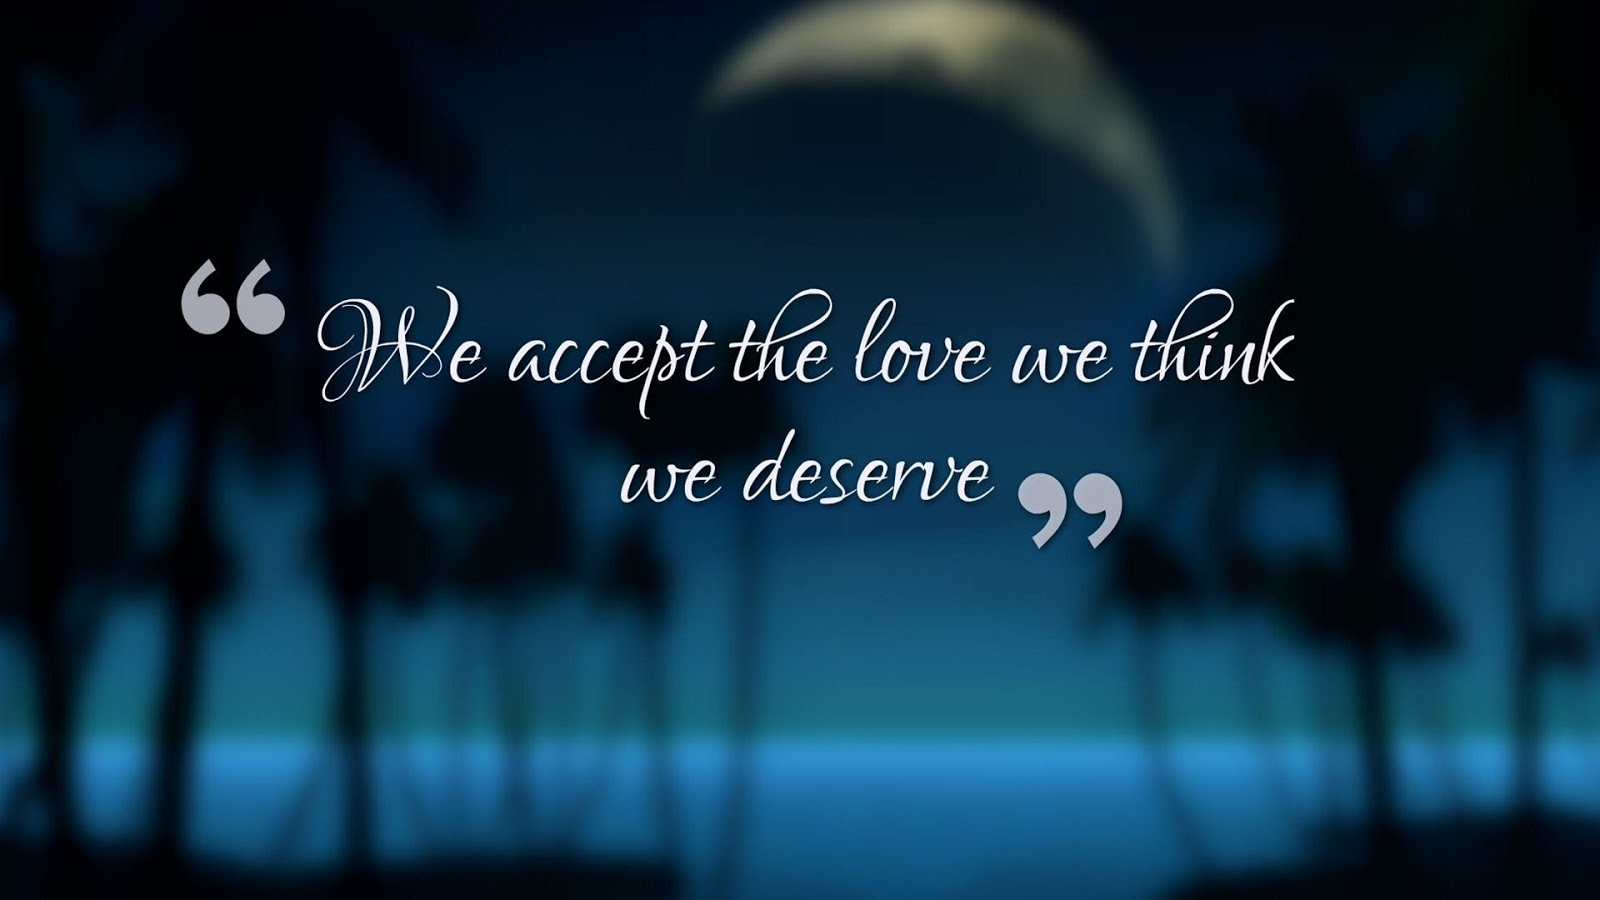 Love Images With: Love Quotes Images and love couple images | Best collection of love images ...